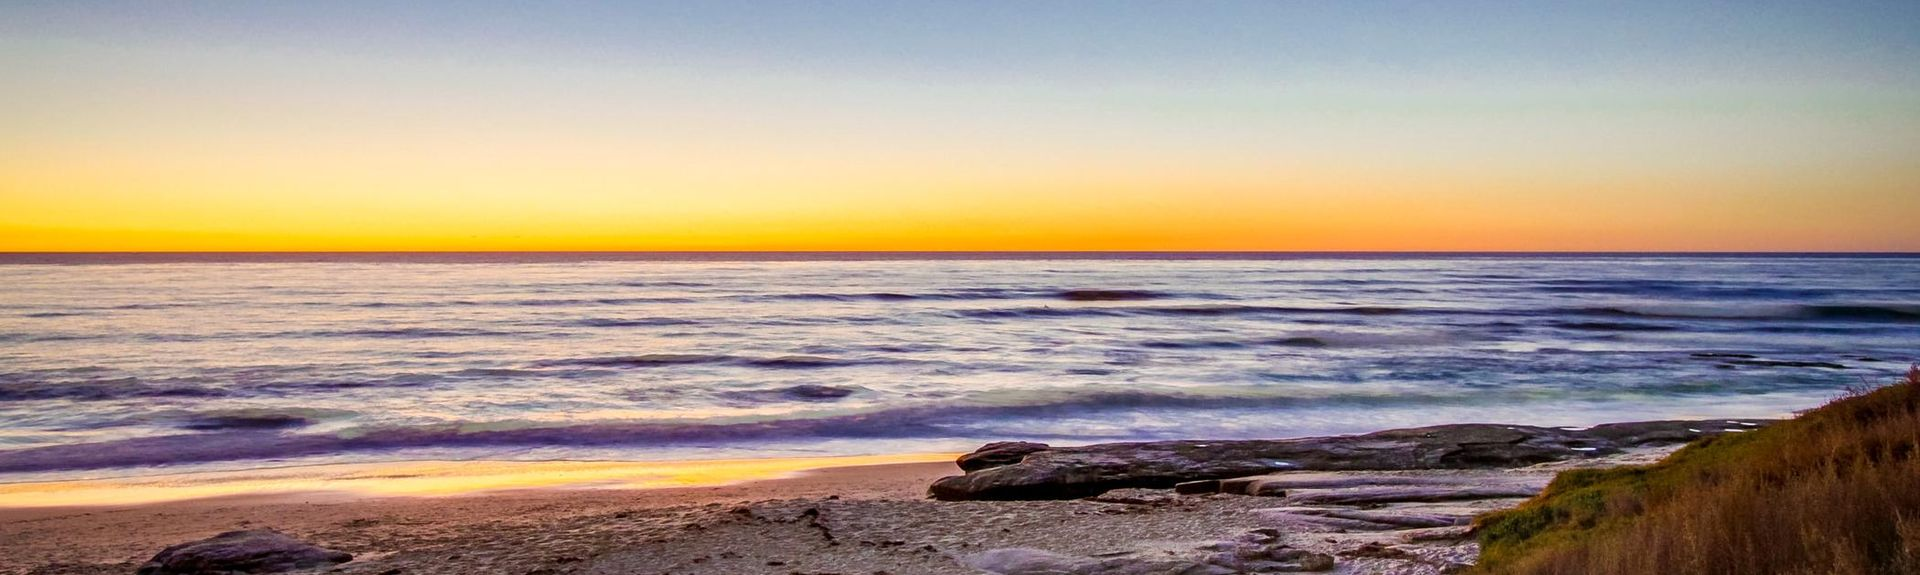 Torrey Pines State Beach, California, United States of America